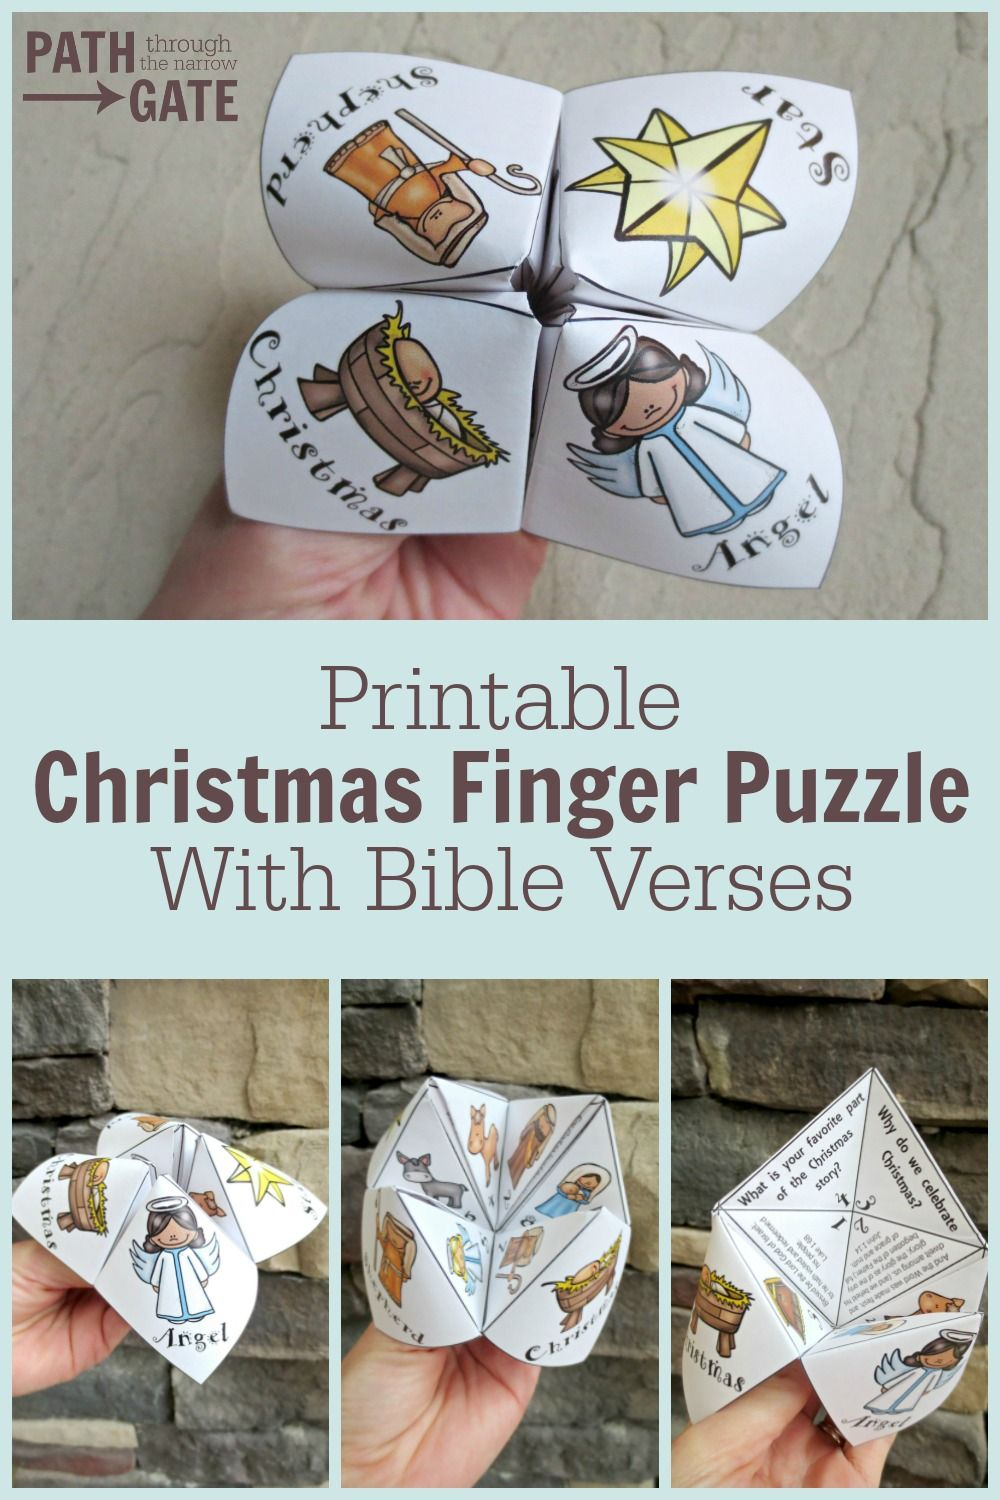 Adorable Printable Christmas Finger Puzzle With Bible Verses - These - Printable Origami Puzzle